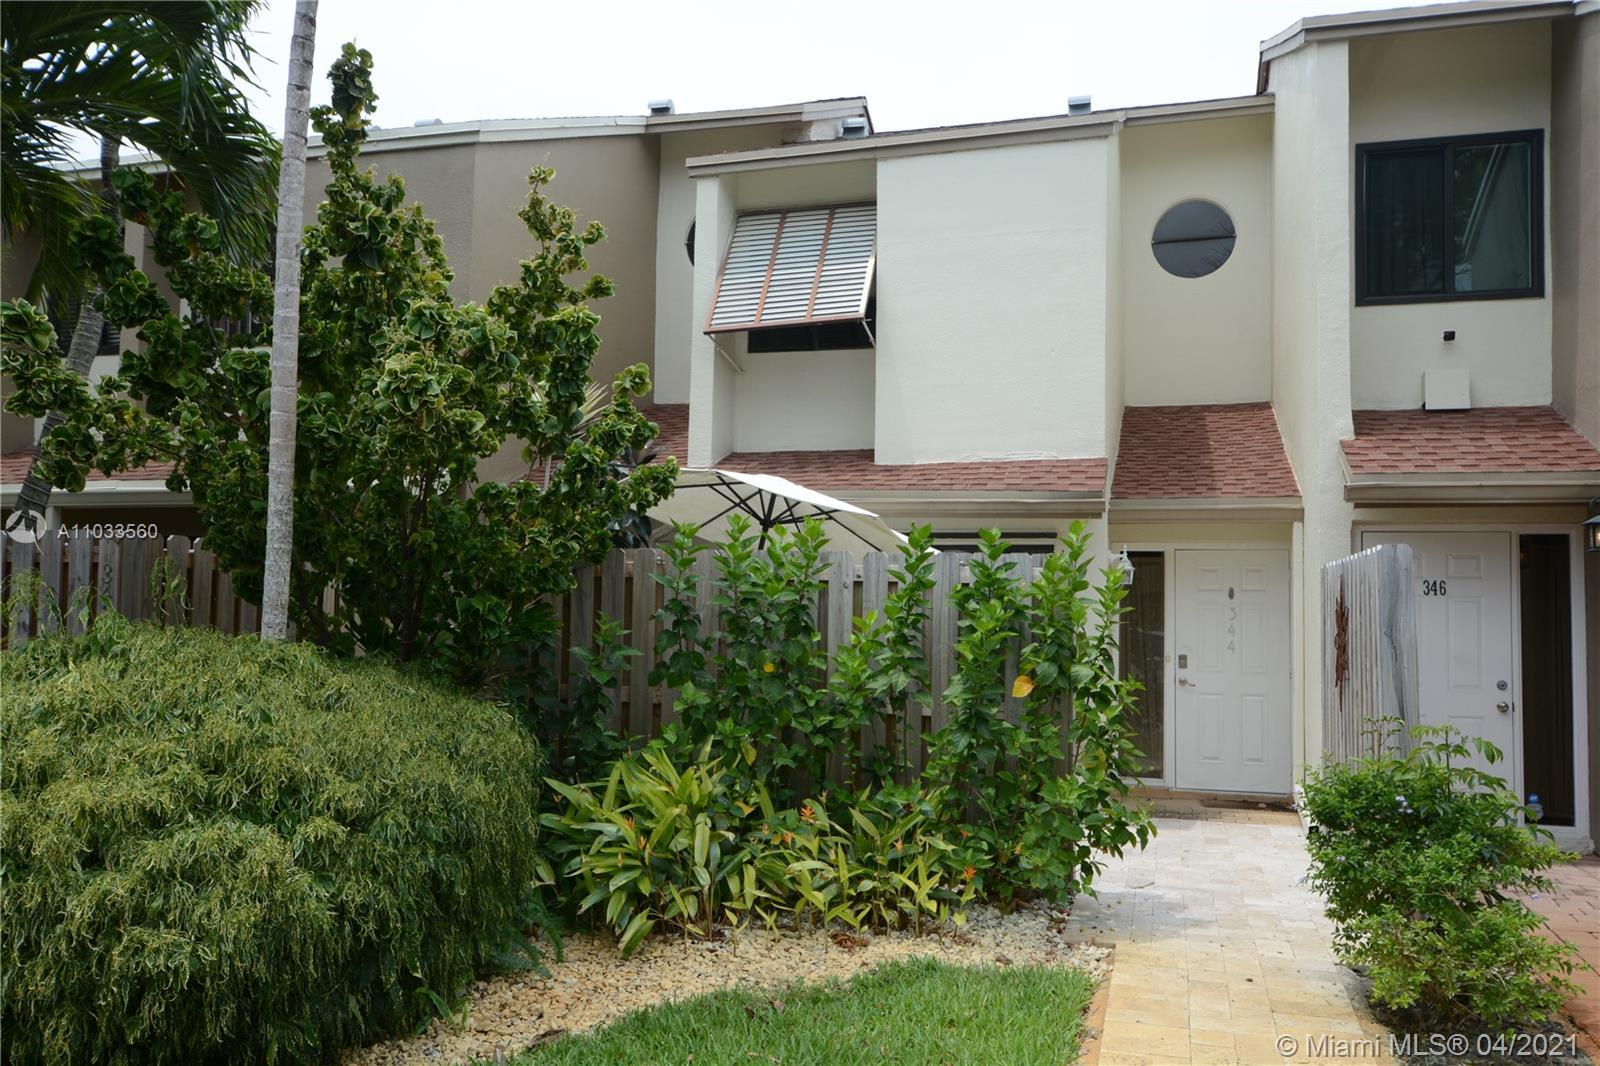 Beautifully updated 2/1.5 townhome in City View in the heart of Downtown Fort Lauderdale right next